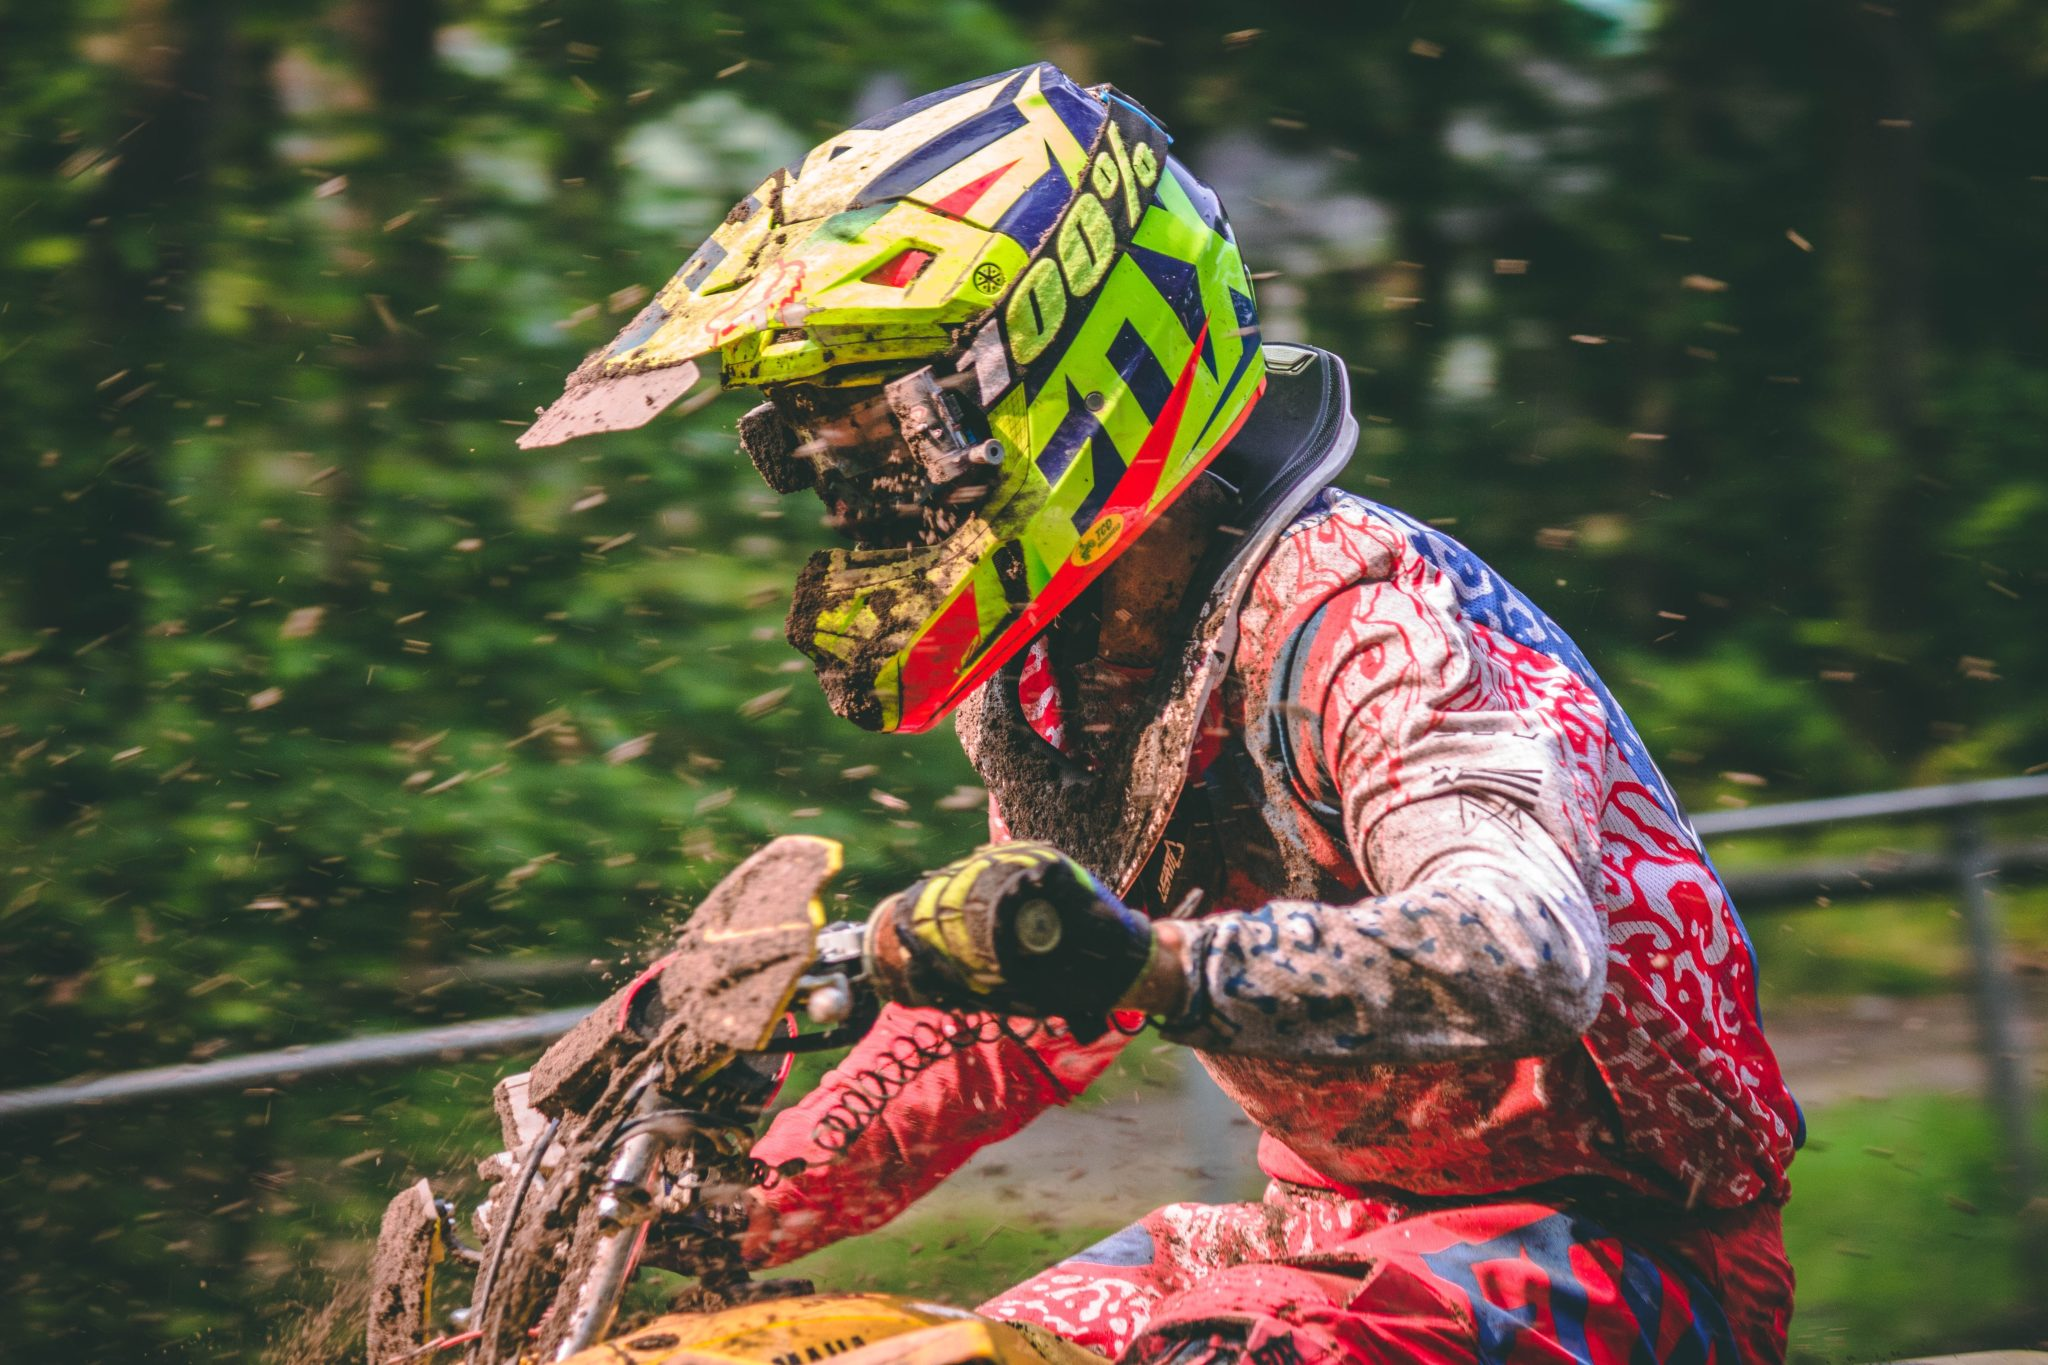 rider covered in mud